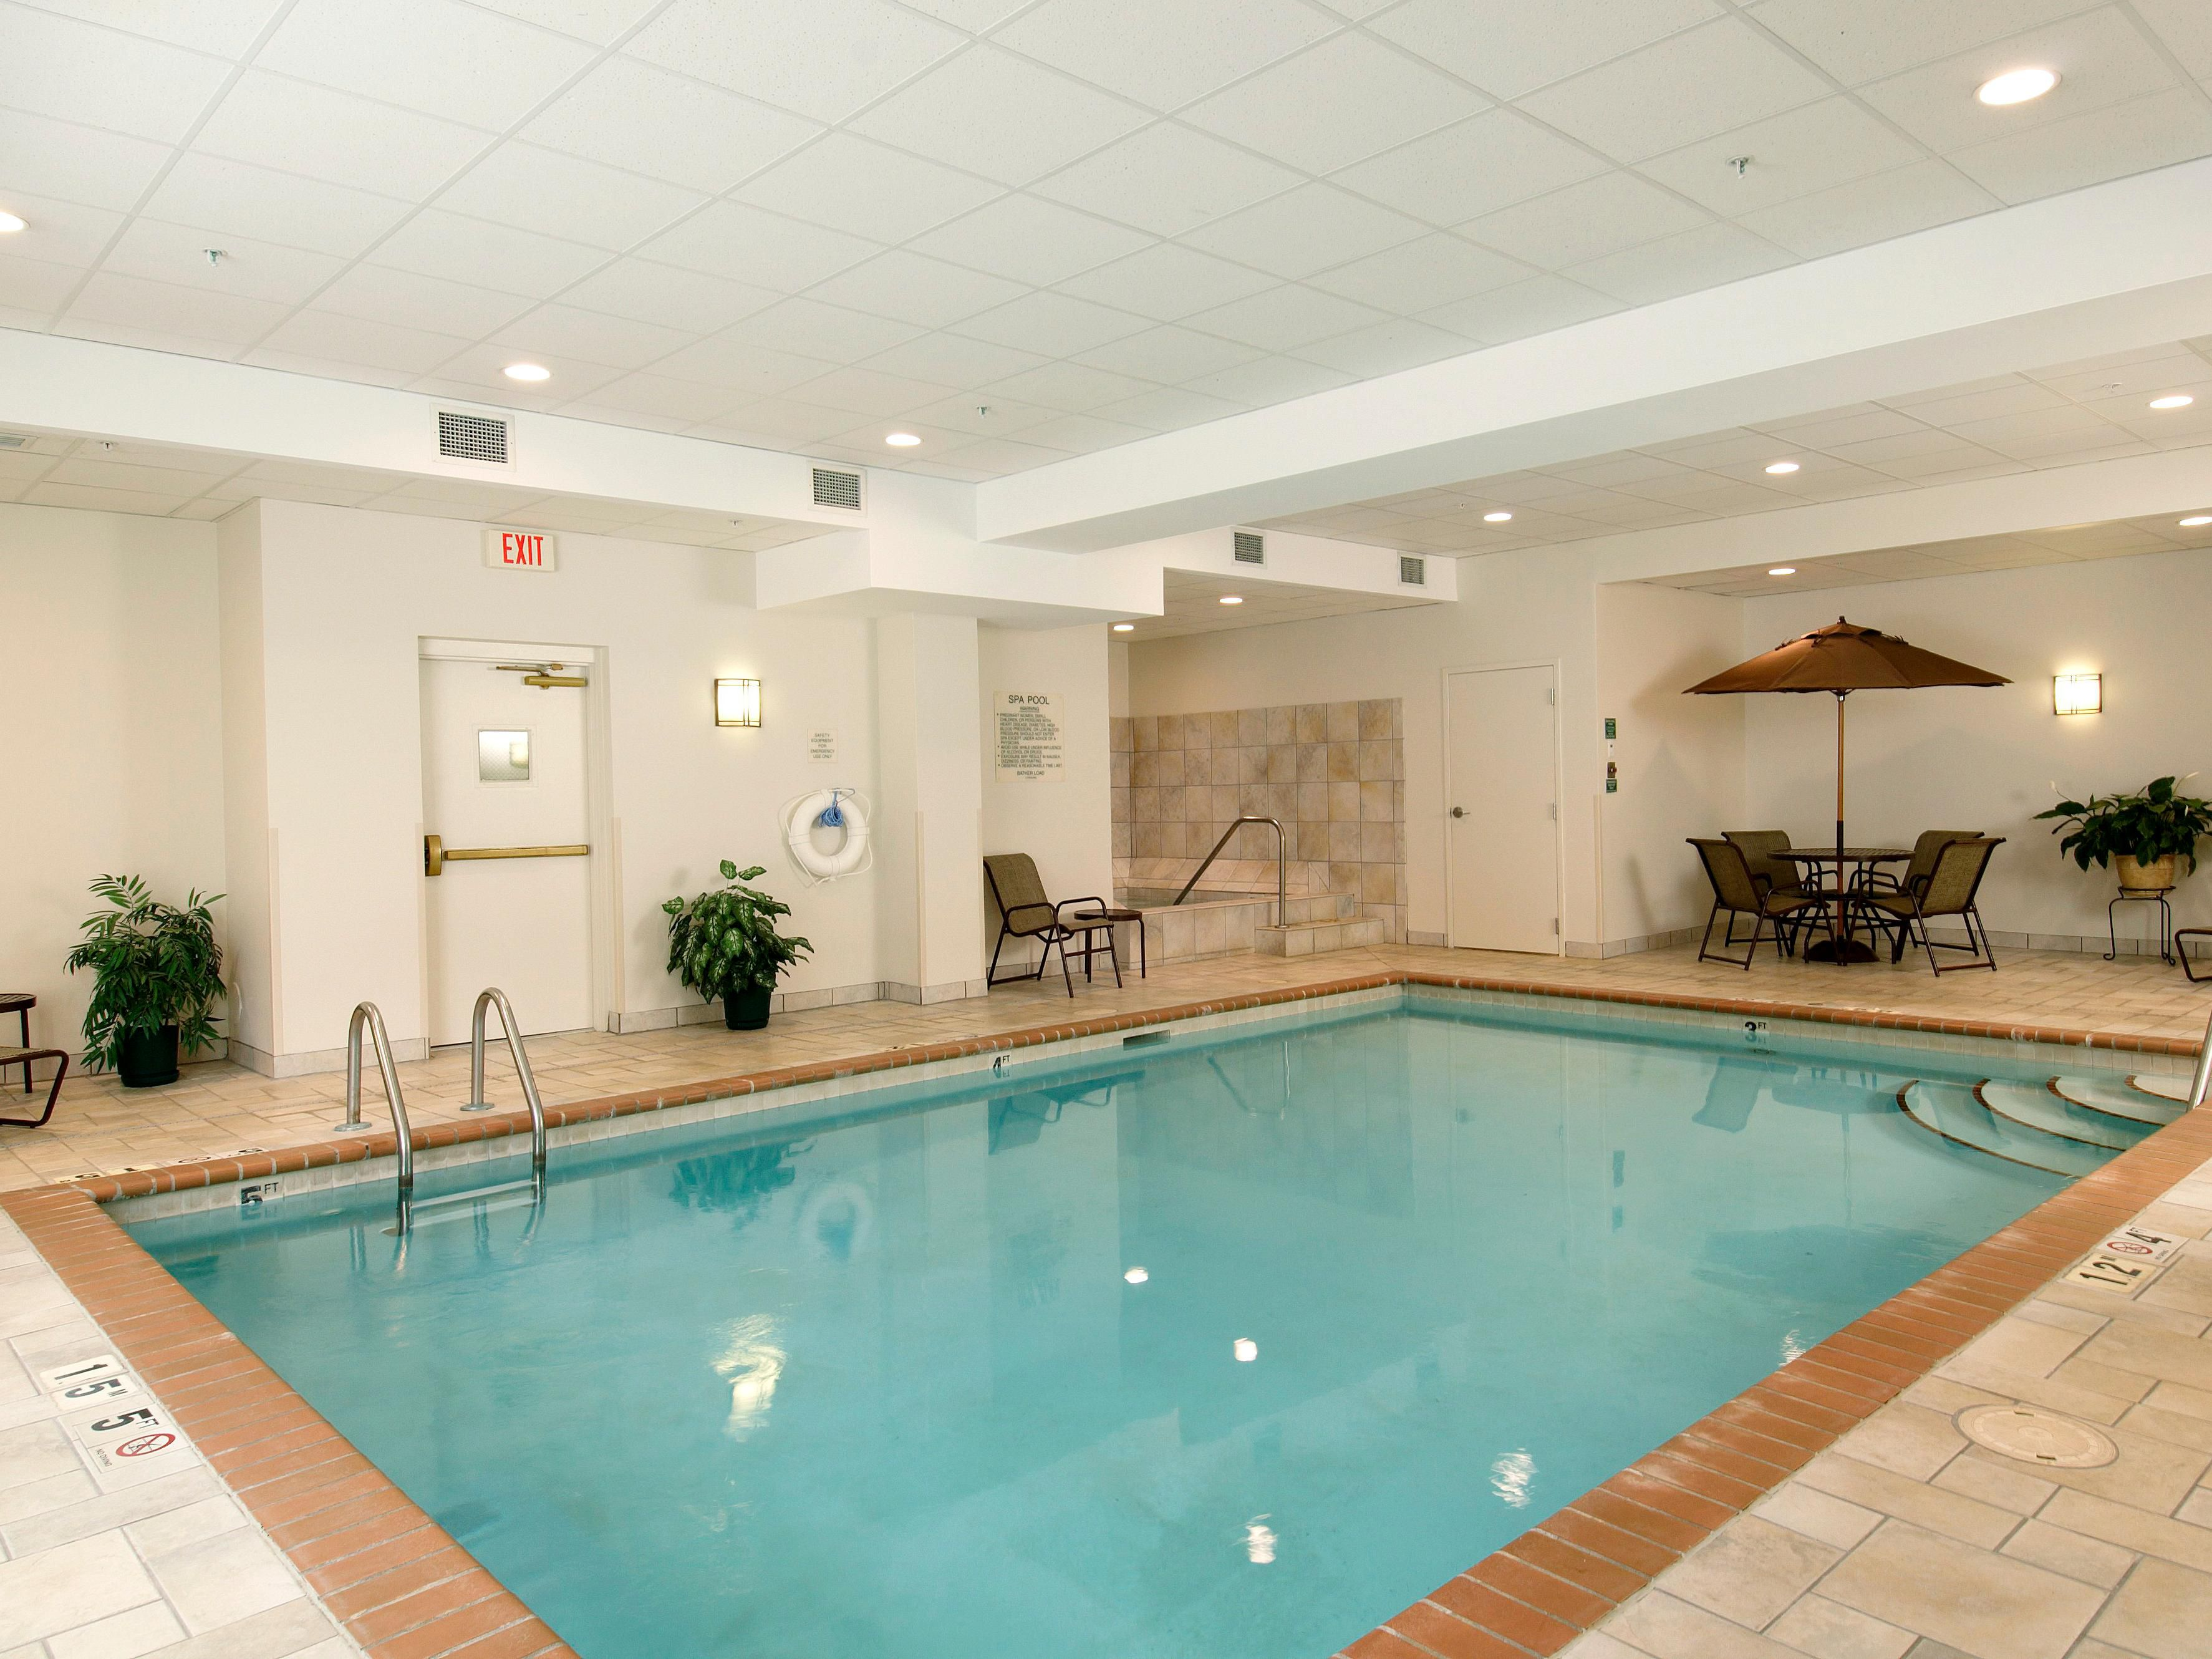 Holiday Inn Express & Suites Dwtn Mpls Conv Ctr - Pool & Hot Tub